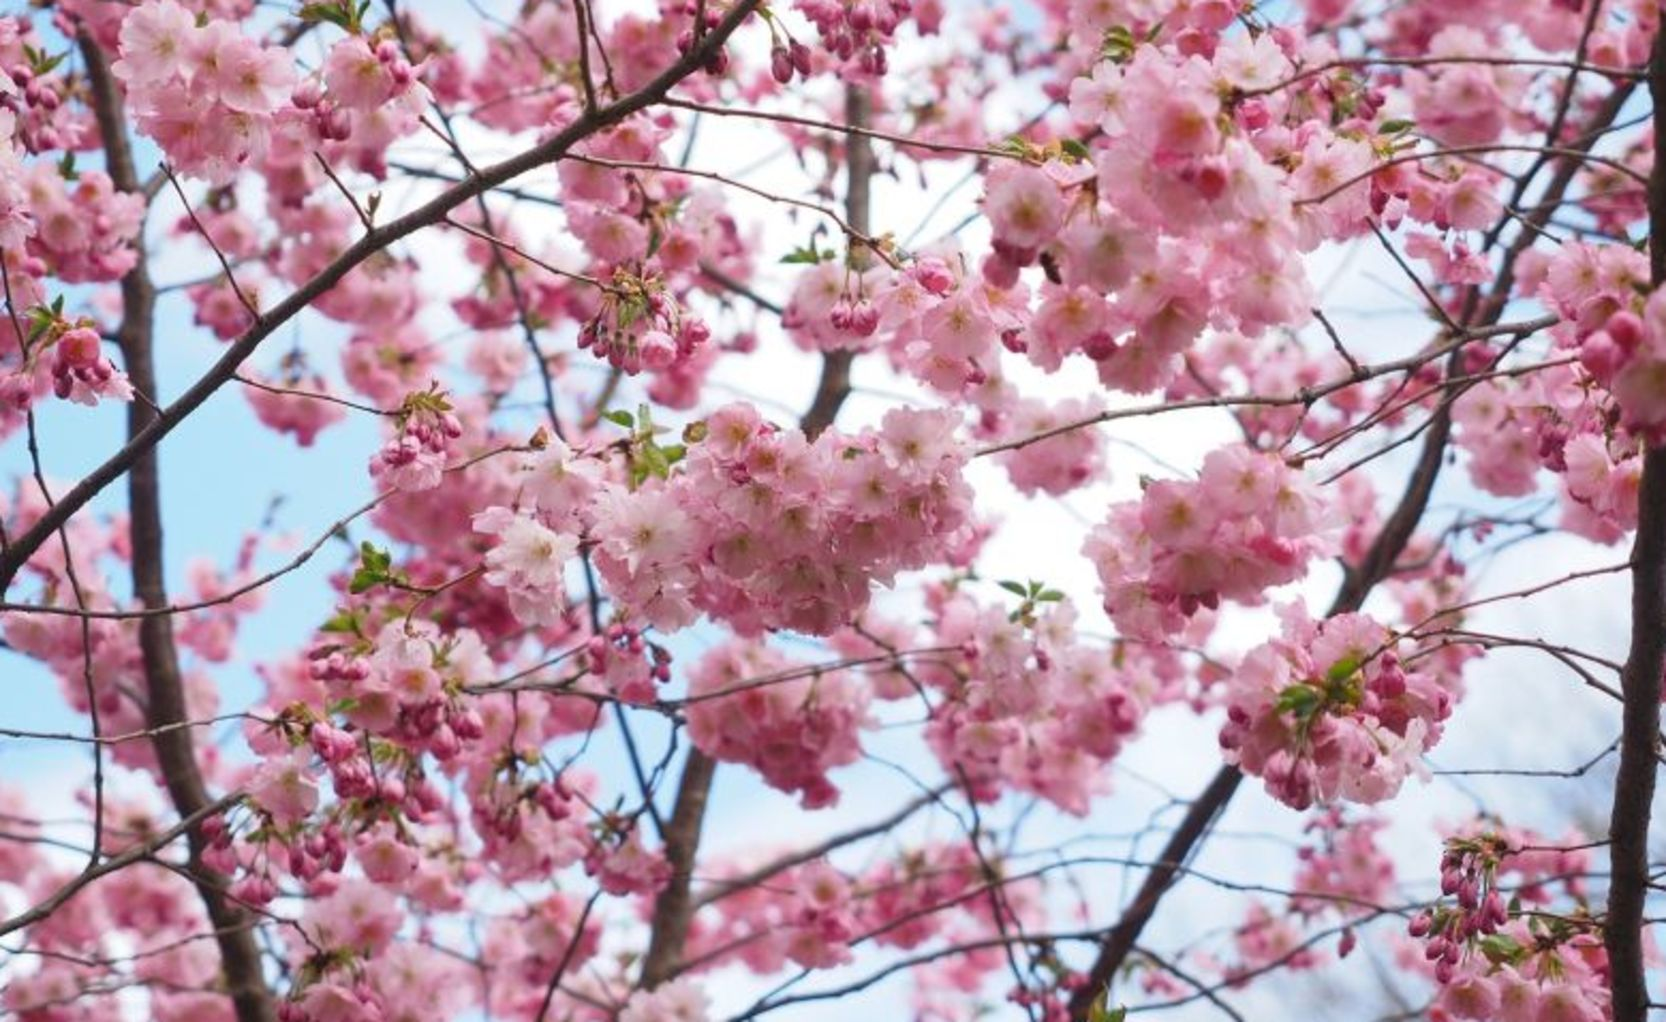 tree of pink bloomed flowers